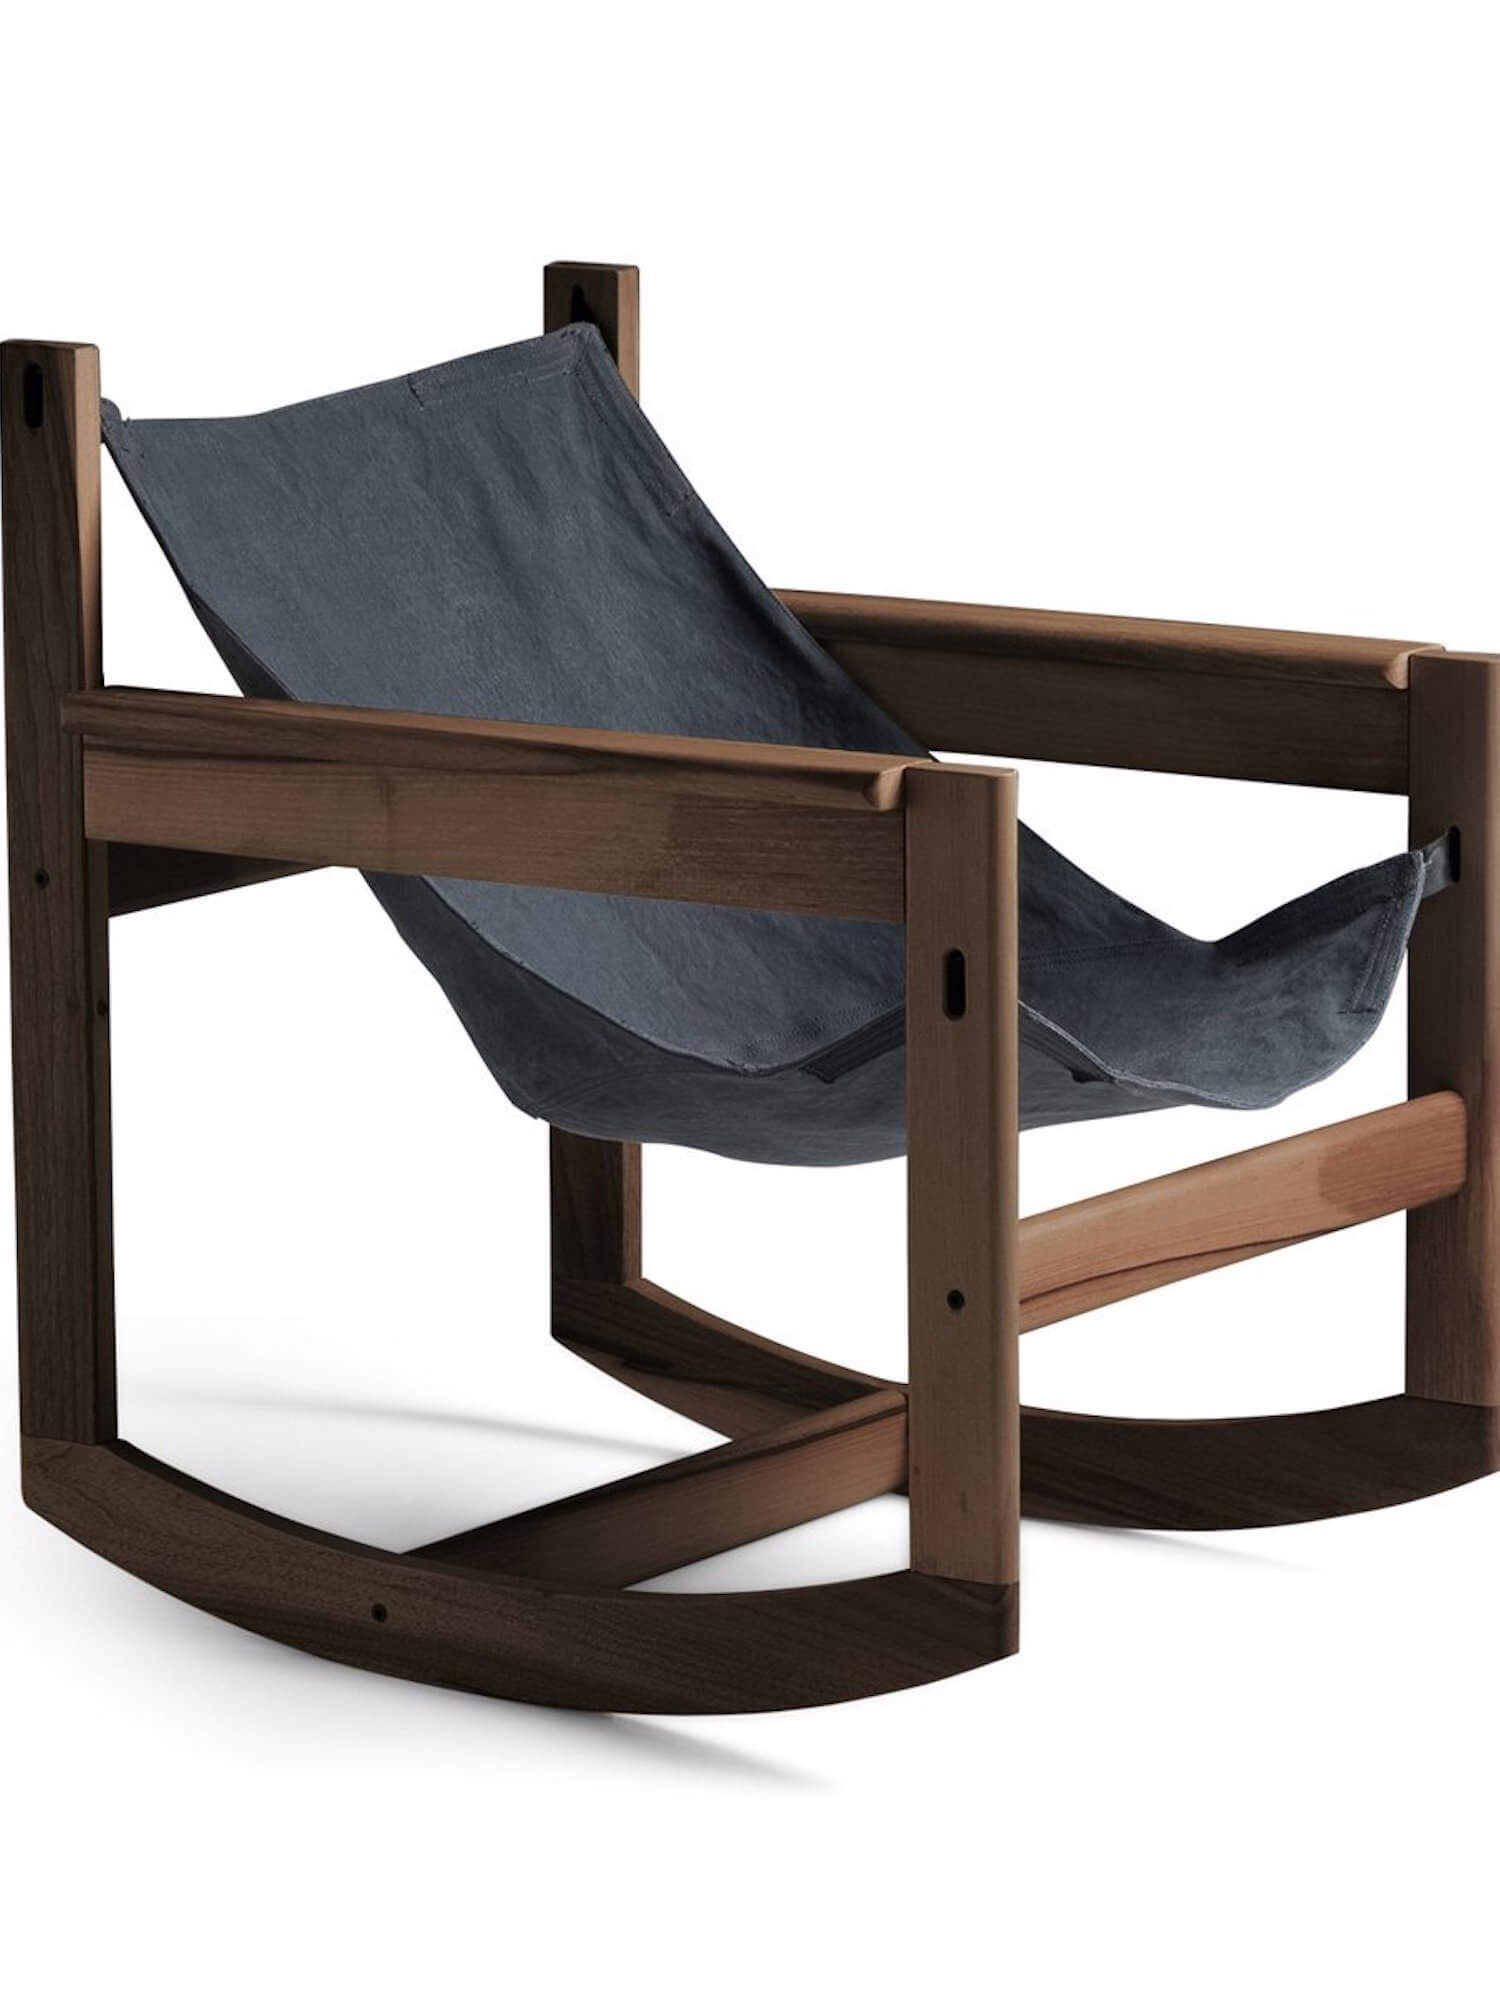 est living the est edit rocking chairs pelicano rocking chair 1